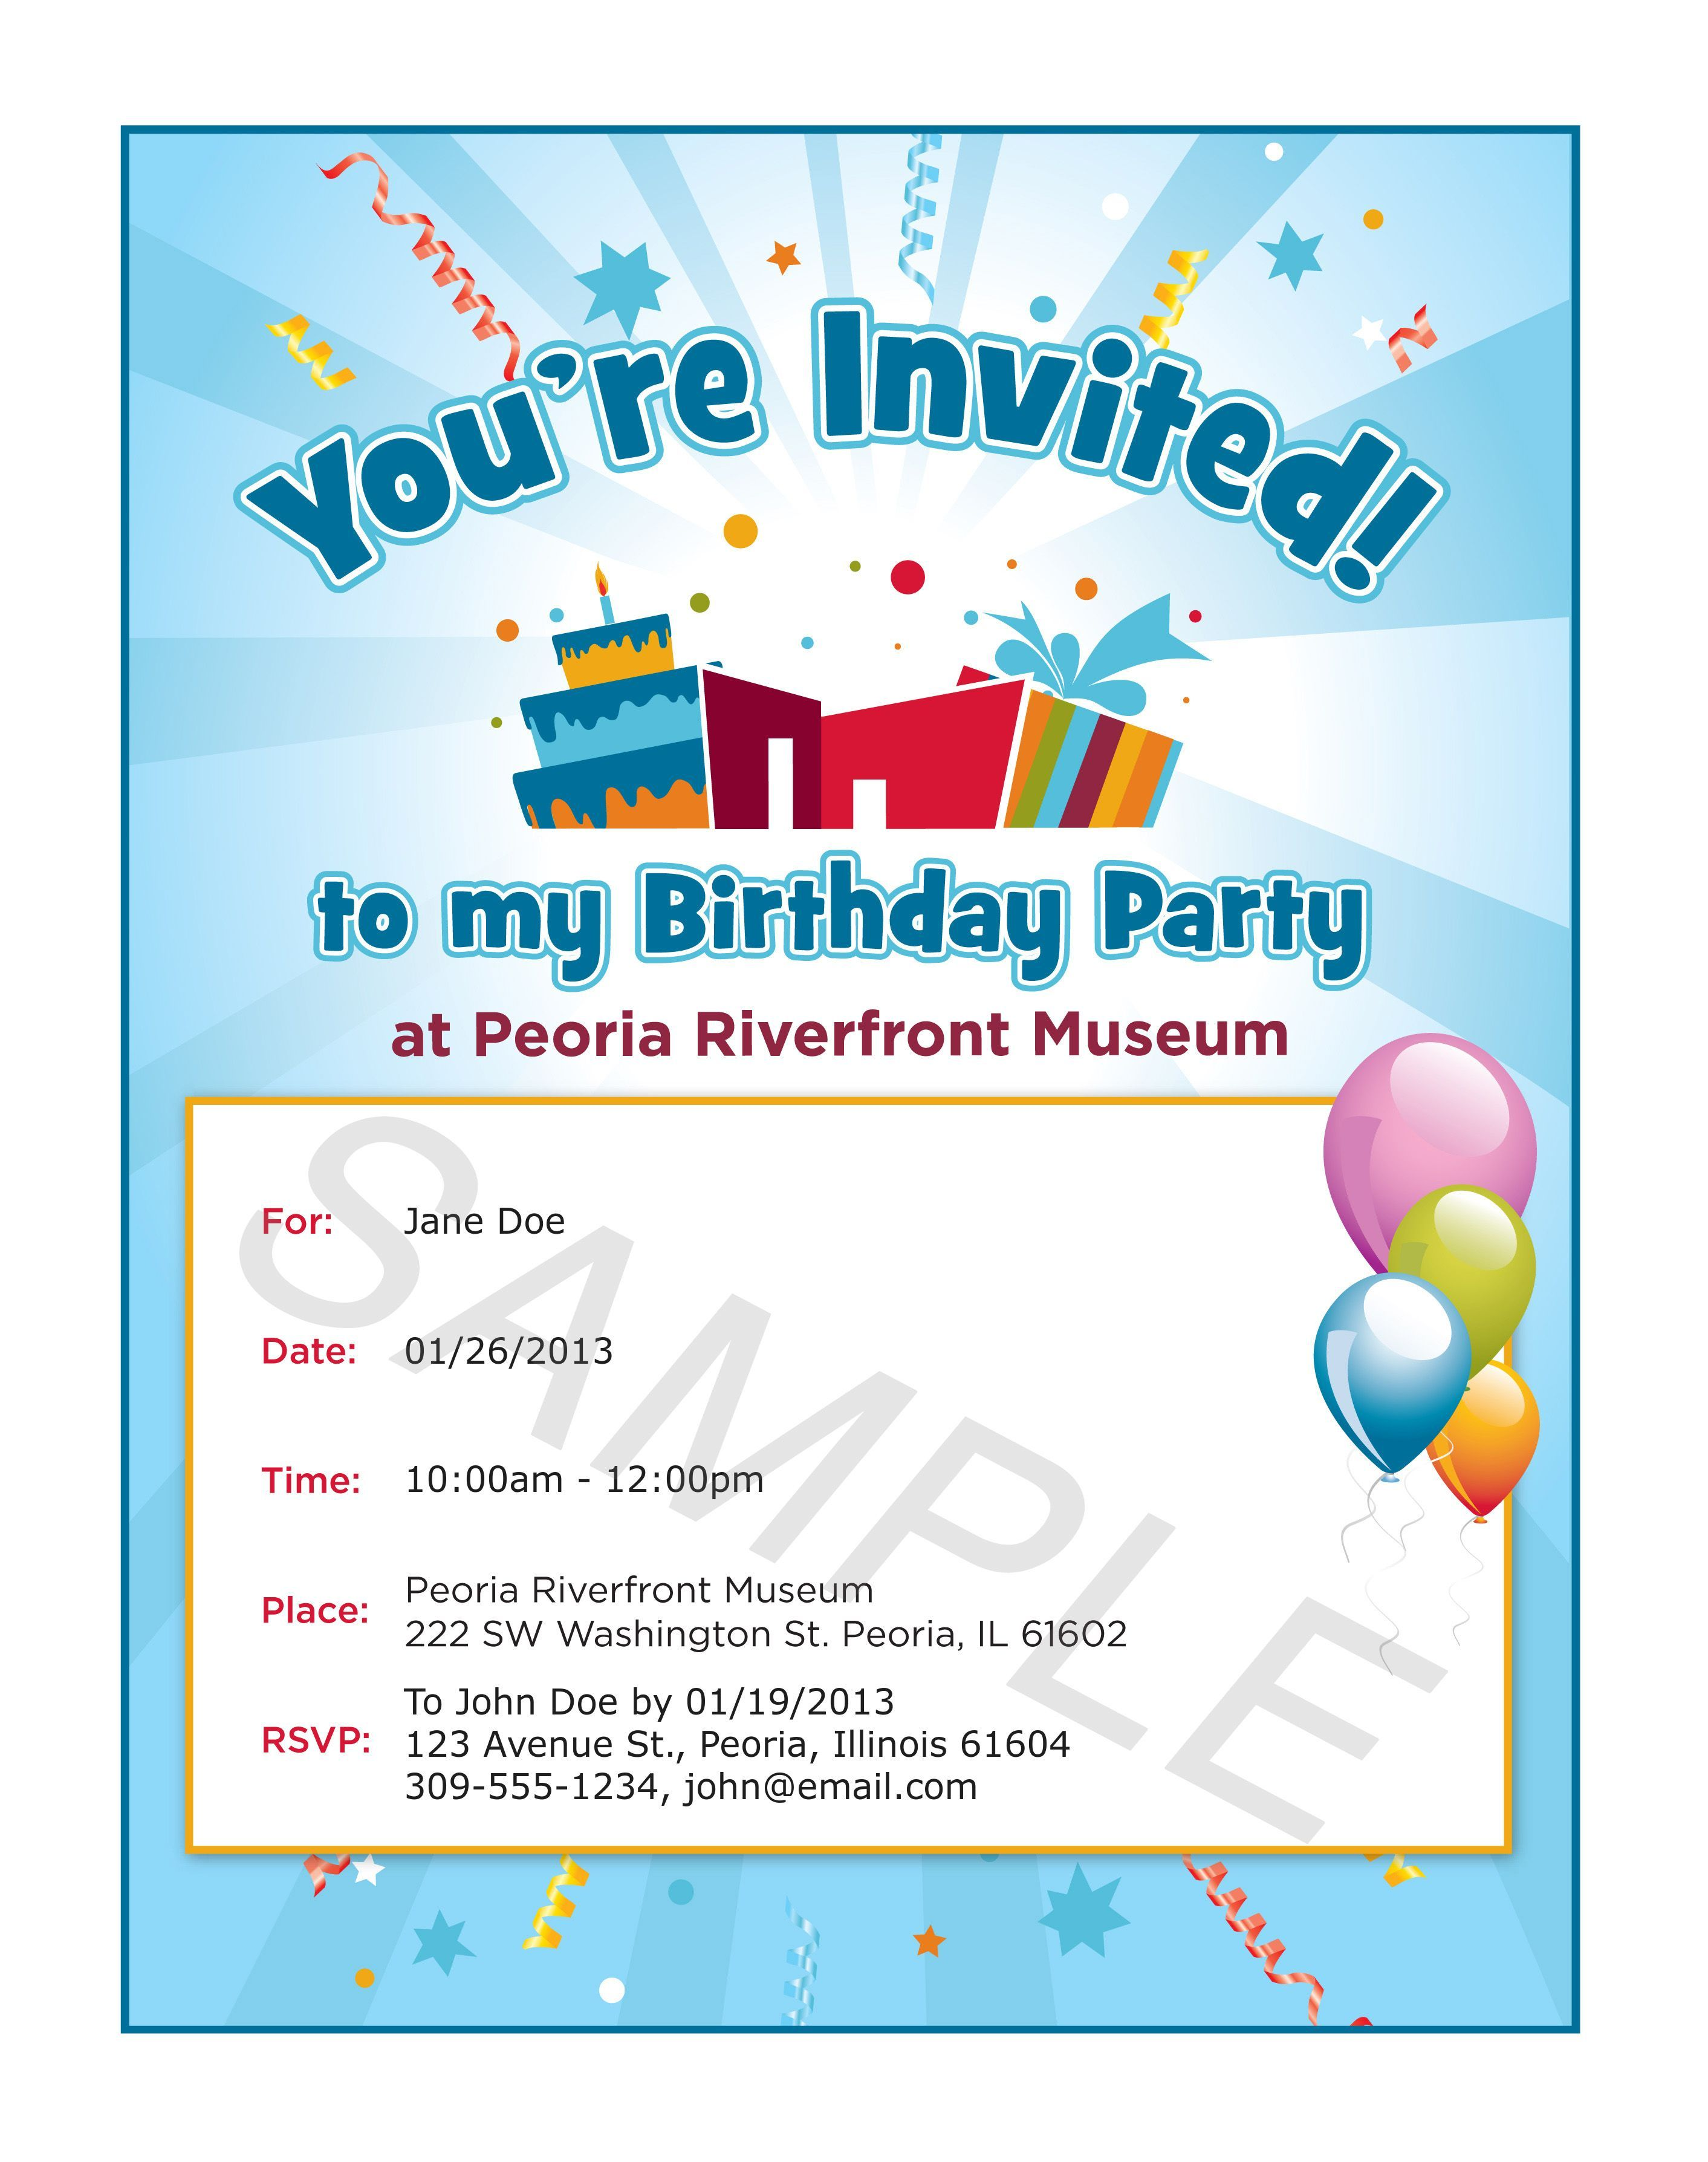 Party Invitation Examples  Invitation card birthday, Party invite